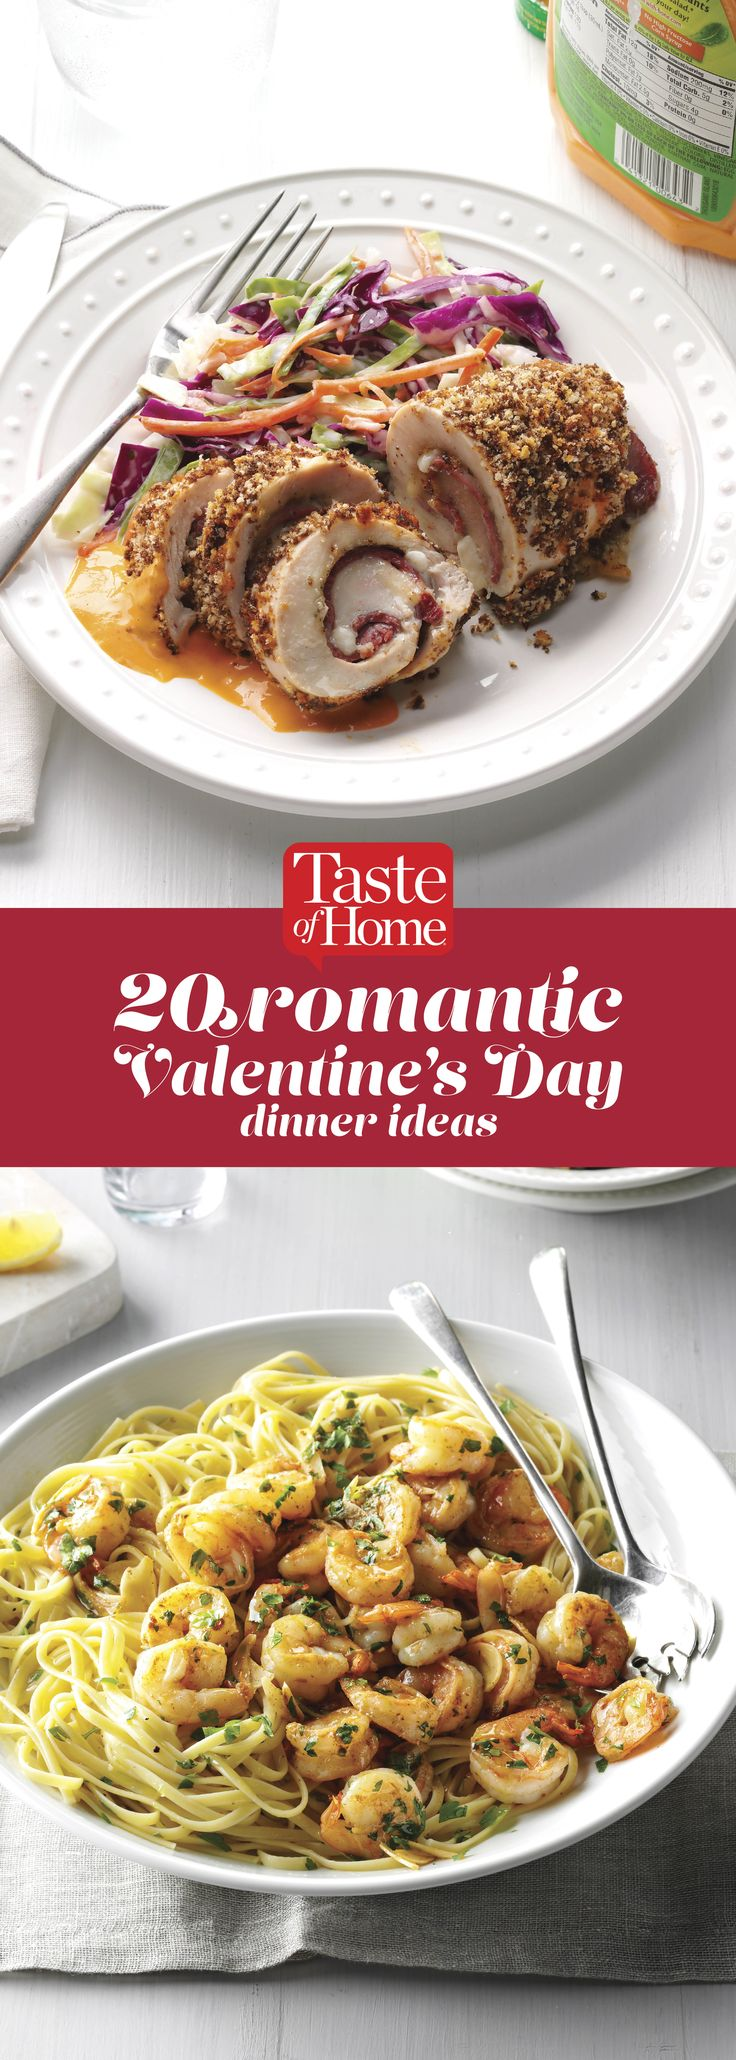 20 Romantic Valentine's Day Dinner Ideas